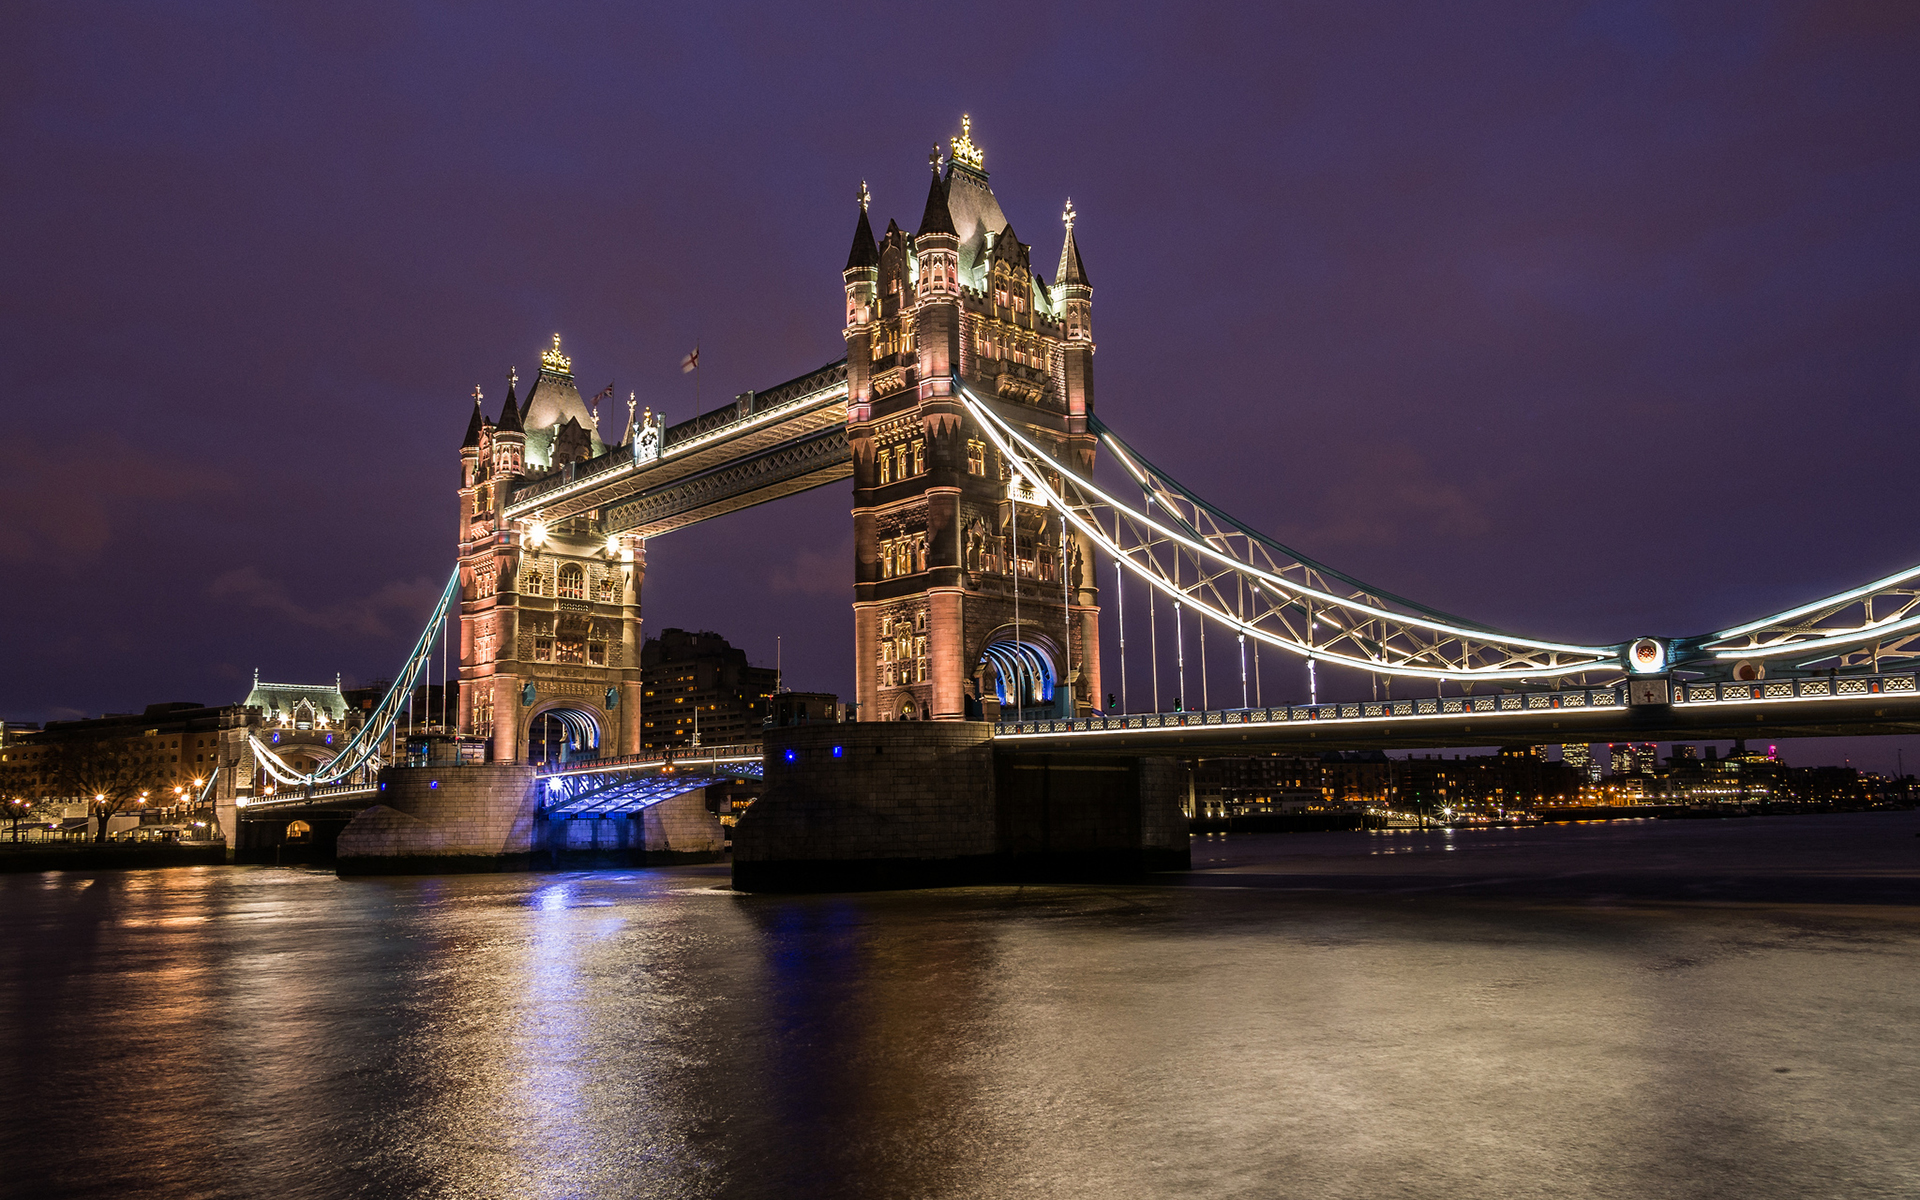 Tower Bridge London Bridge River Night Wallpaper